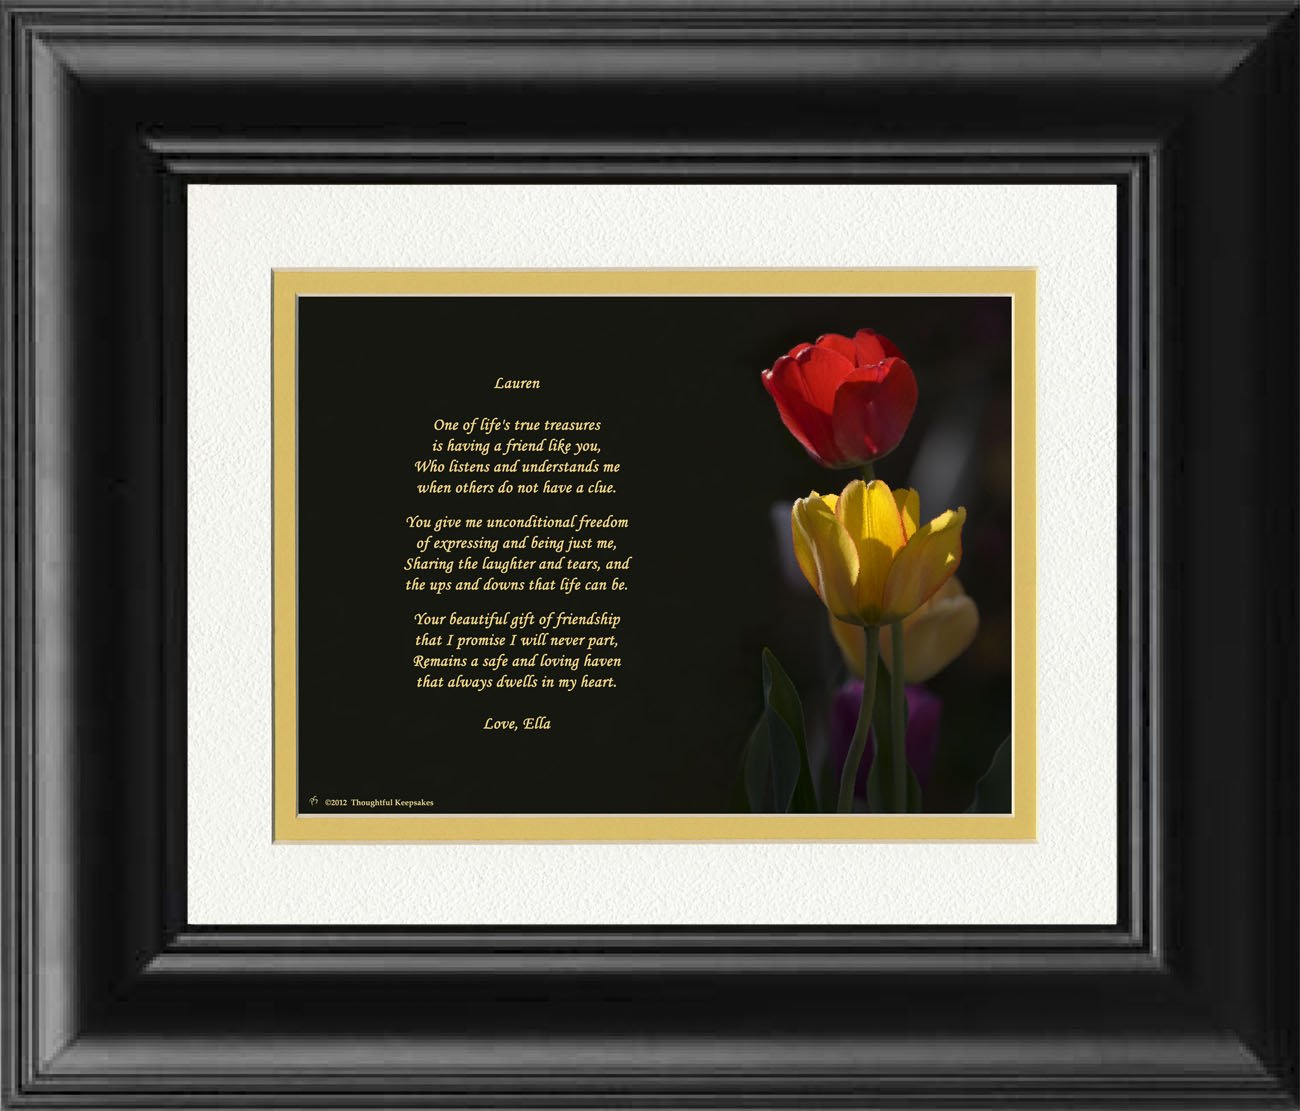 Amazon.com: Framed Personalized Friend Gift. Tulips Photo with This ...